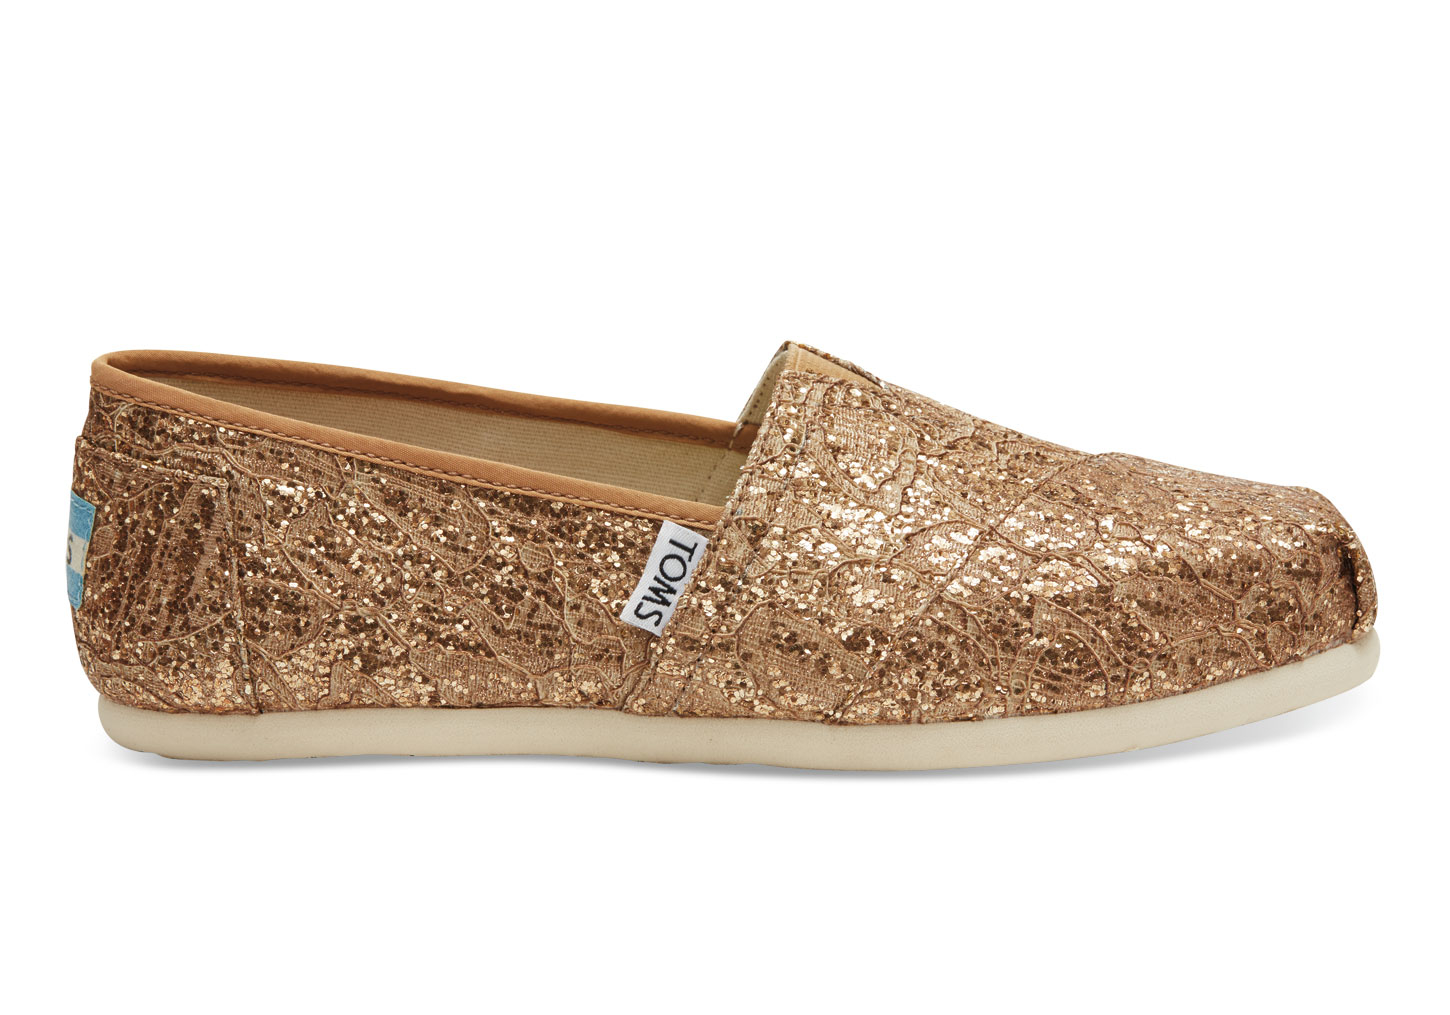 Toms Gold Glitter Shoes Size